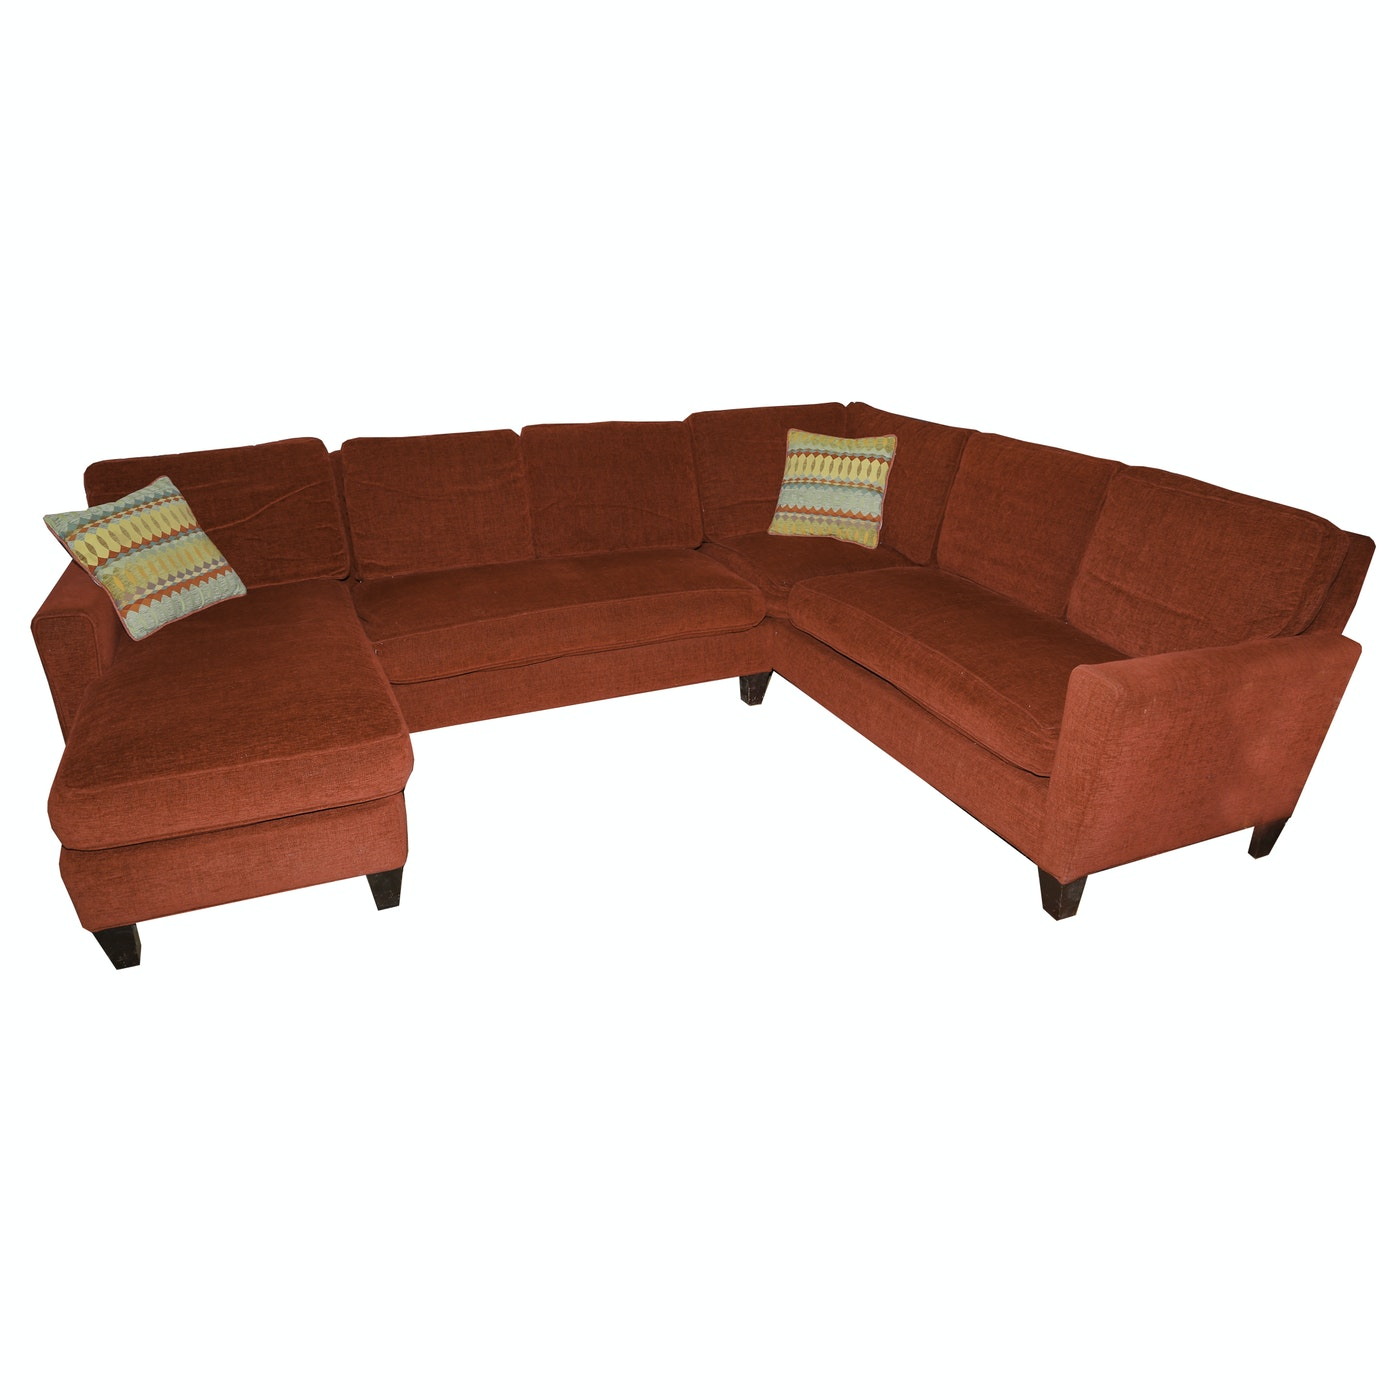 Red upholstered sectional sofa by storehouse furniture ebth for Storehouse furniture